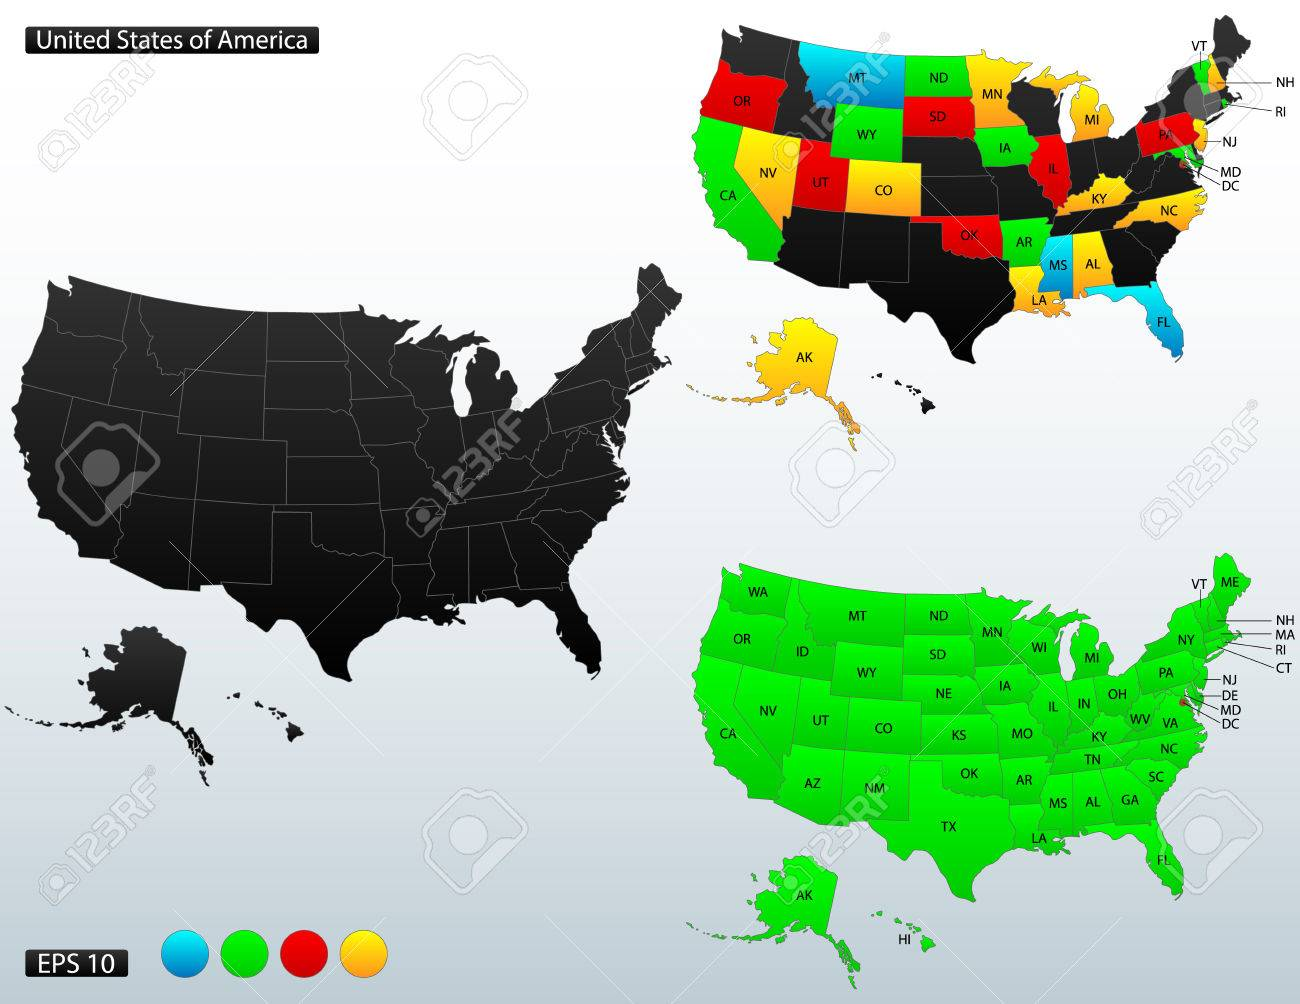 United States of America map, with internal boundaries and state.. on map color, map tattoo, map mobile, map numbers, map code, map ornaments, map flags, map wedding, map language, map decorations, map symbols, map logos, map jewelry,